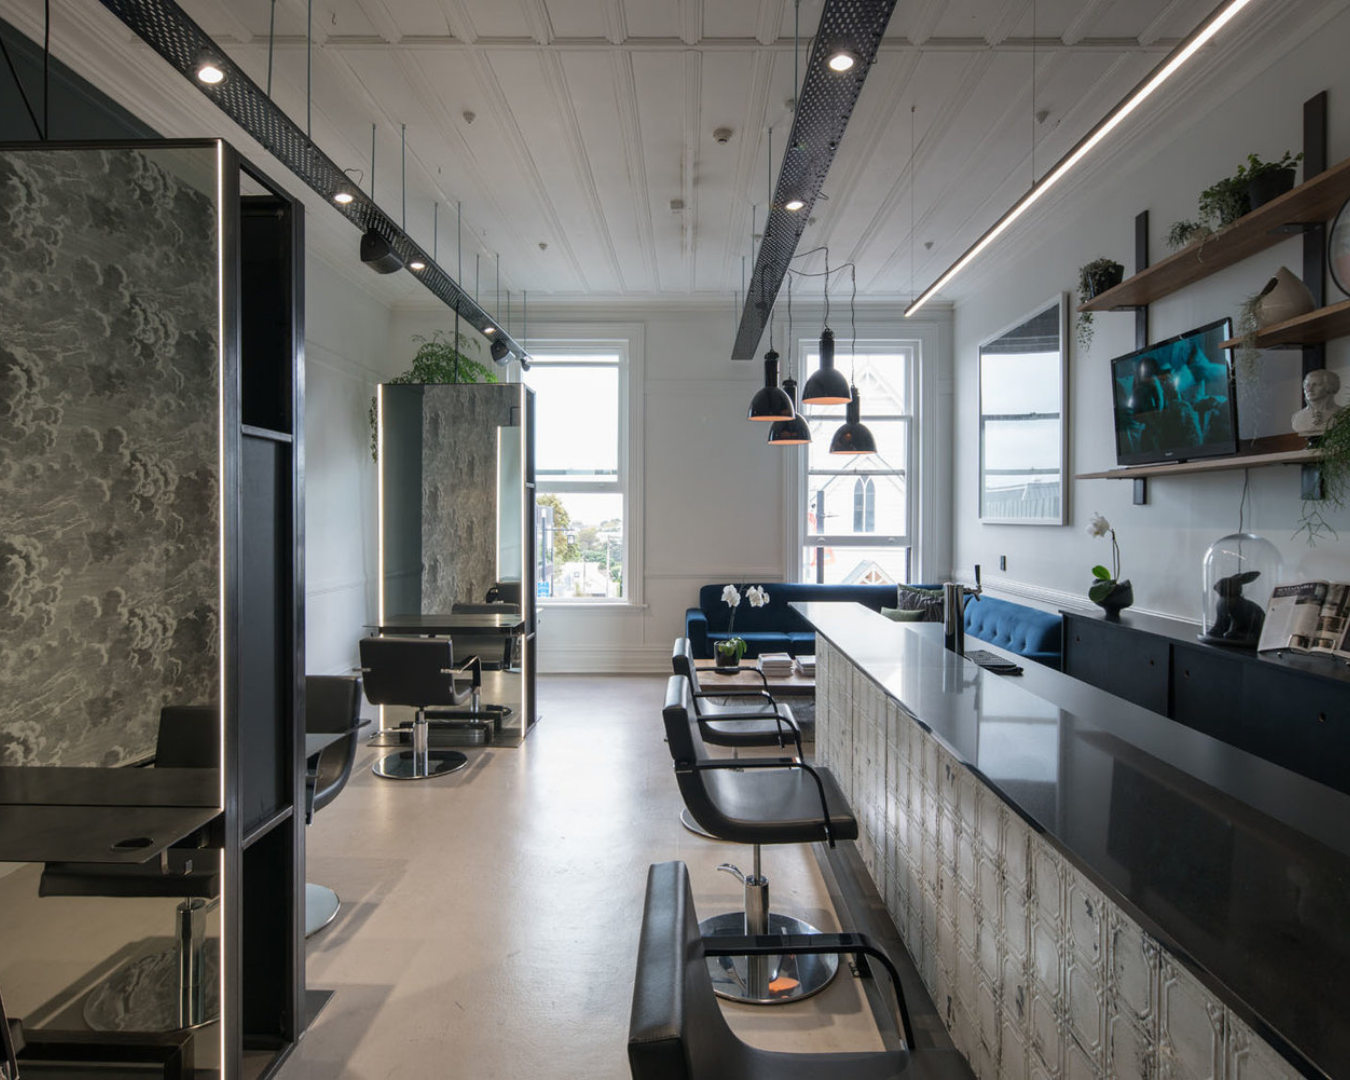 Inside of the salon with artistic décor and a posh lounge area